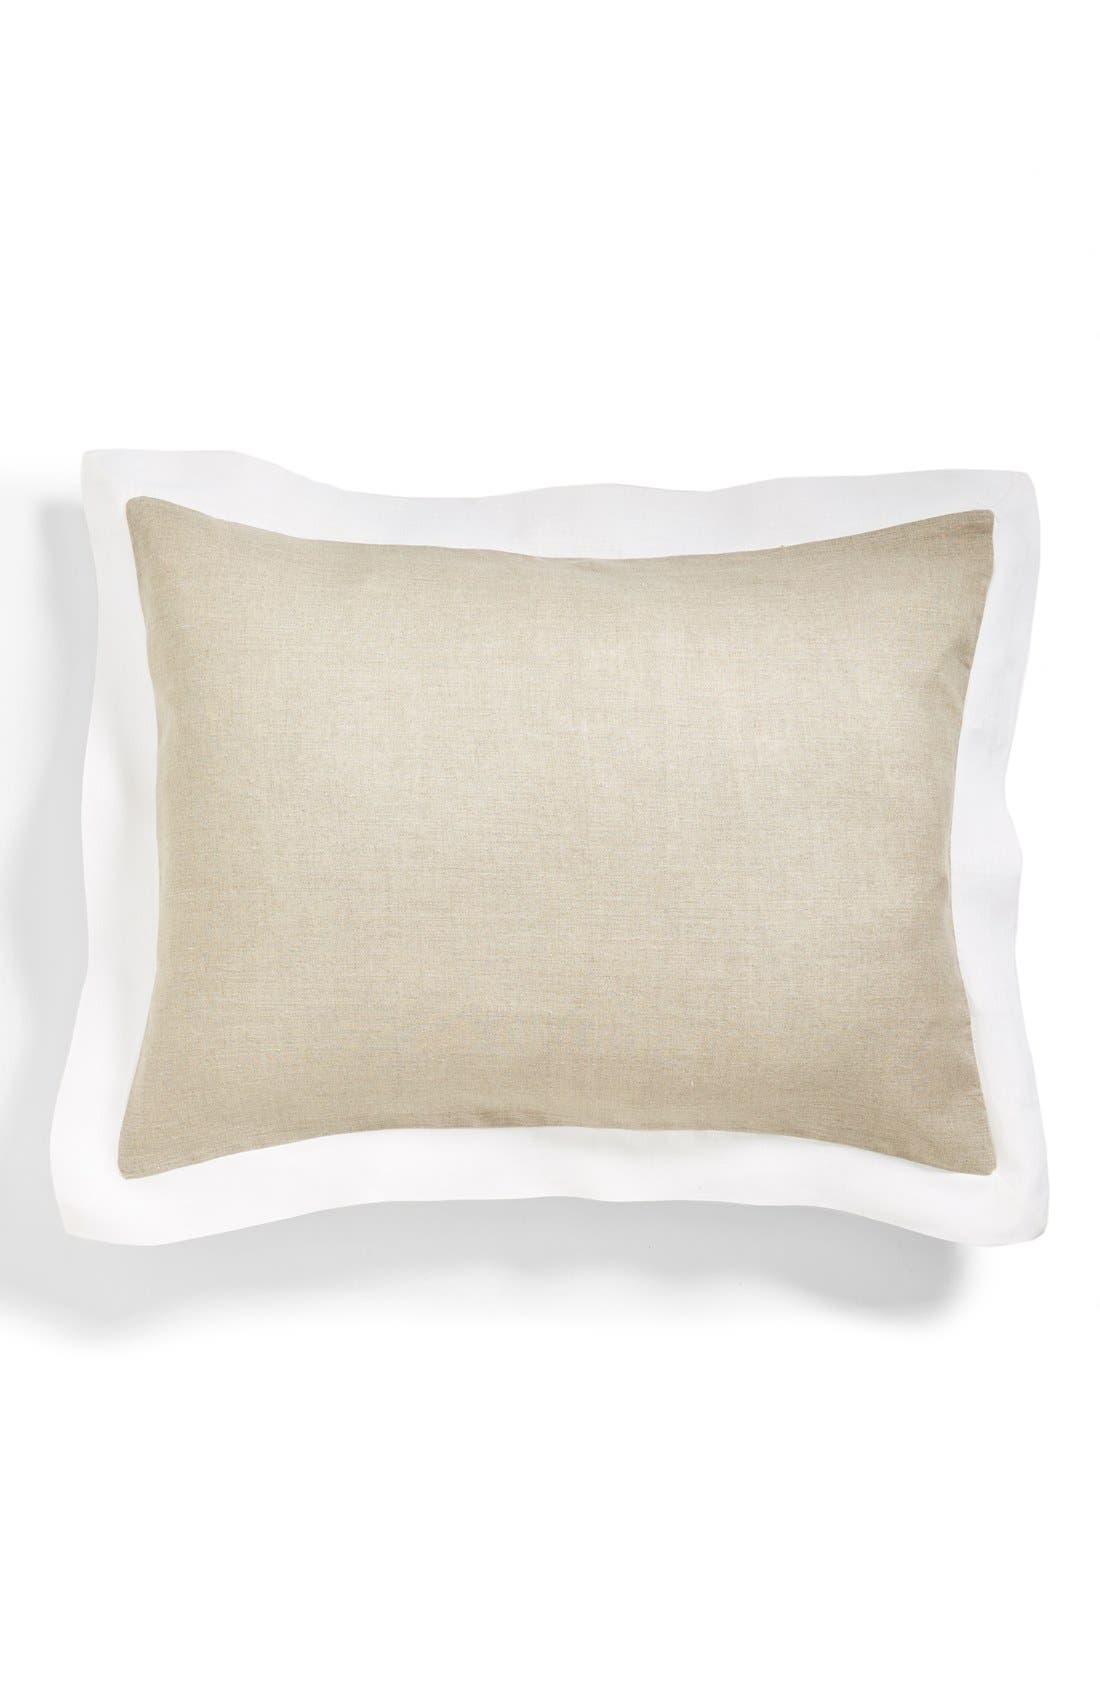 Alternate Image 1 Selected - Amity Home 'Benedetto' Linen Pillow Sham